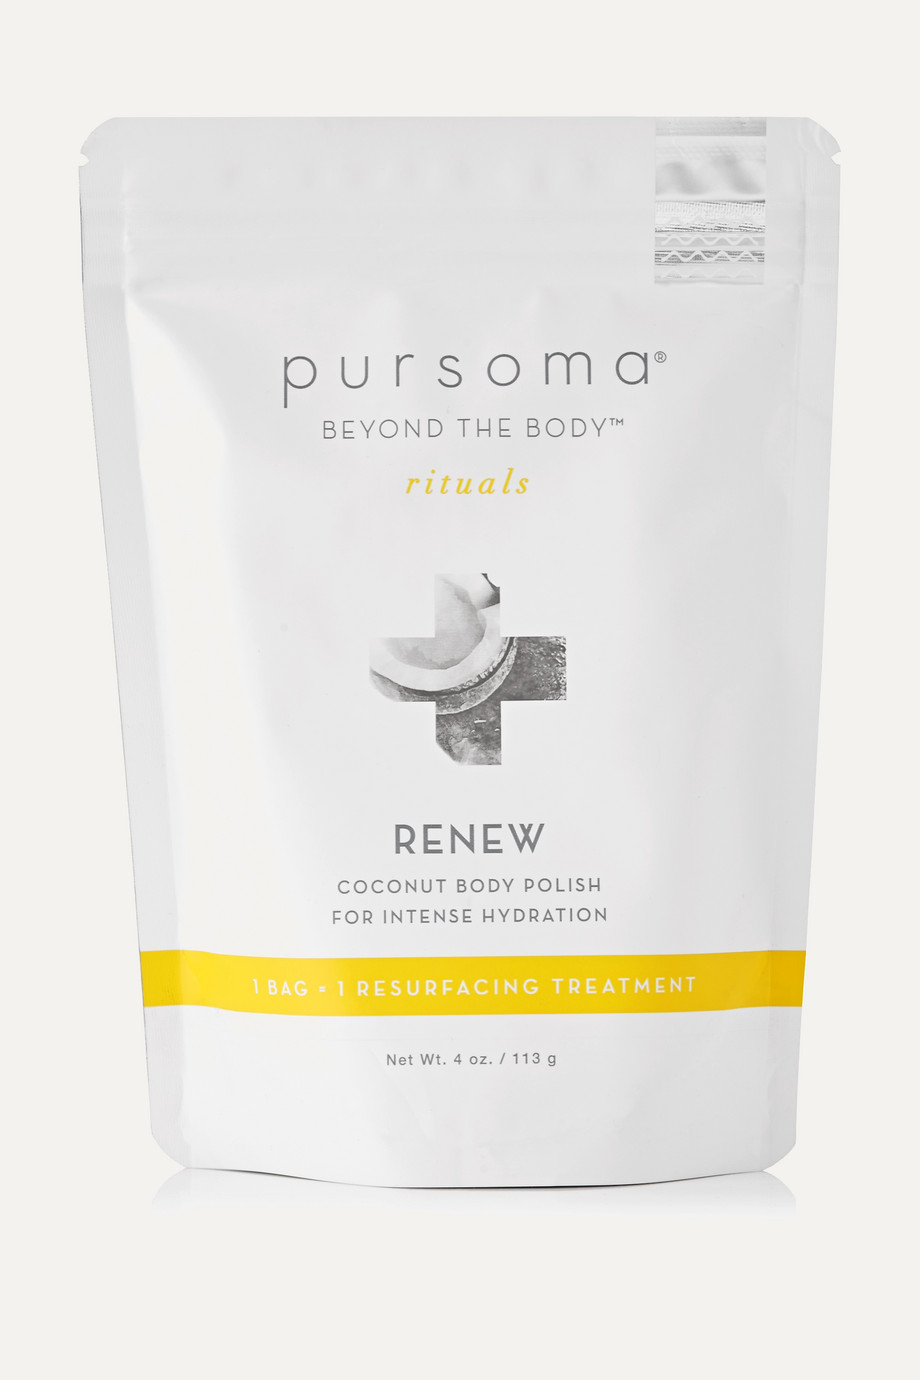 Pursoma Renew Coconut Body Polish, 113g